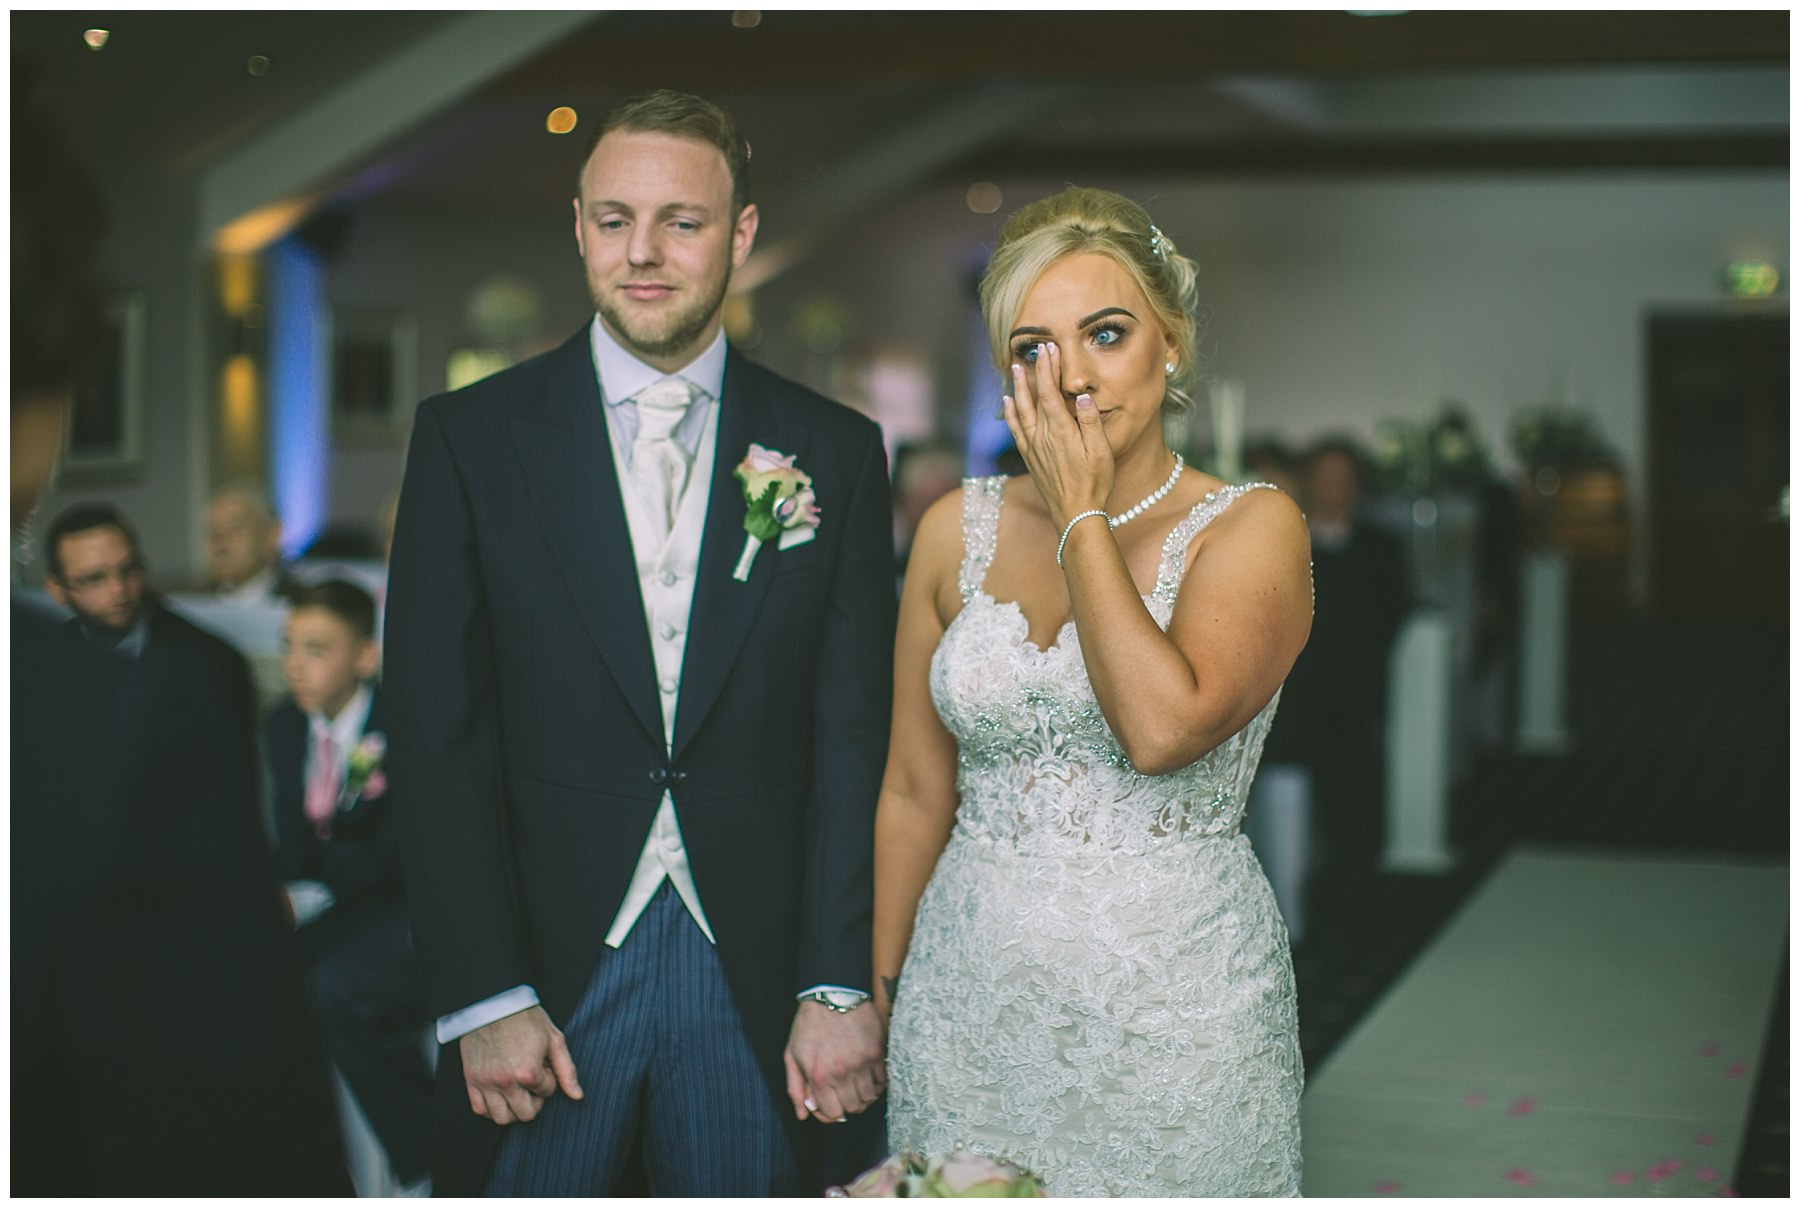 Bride wipes a tear from her eye during wedding ceremony